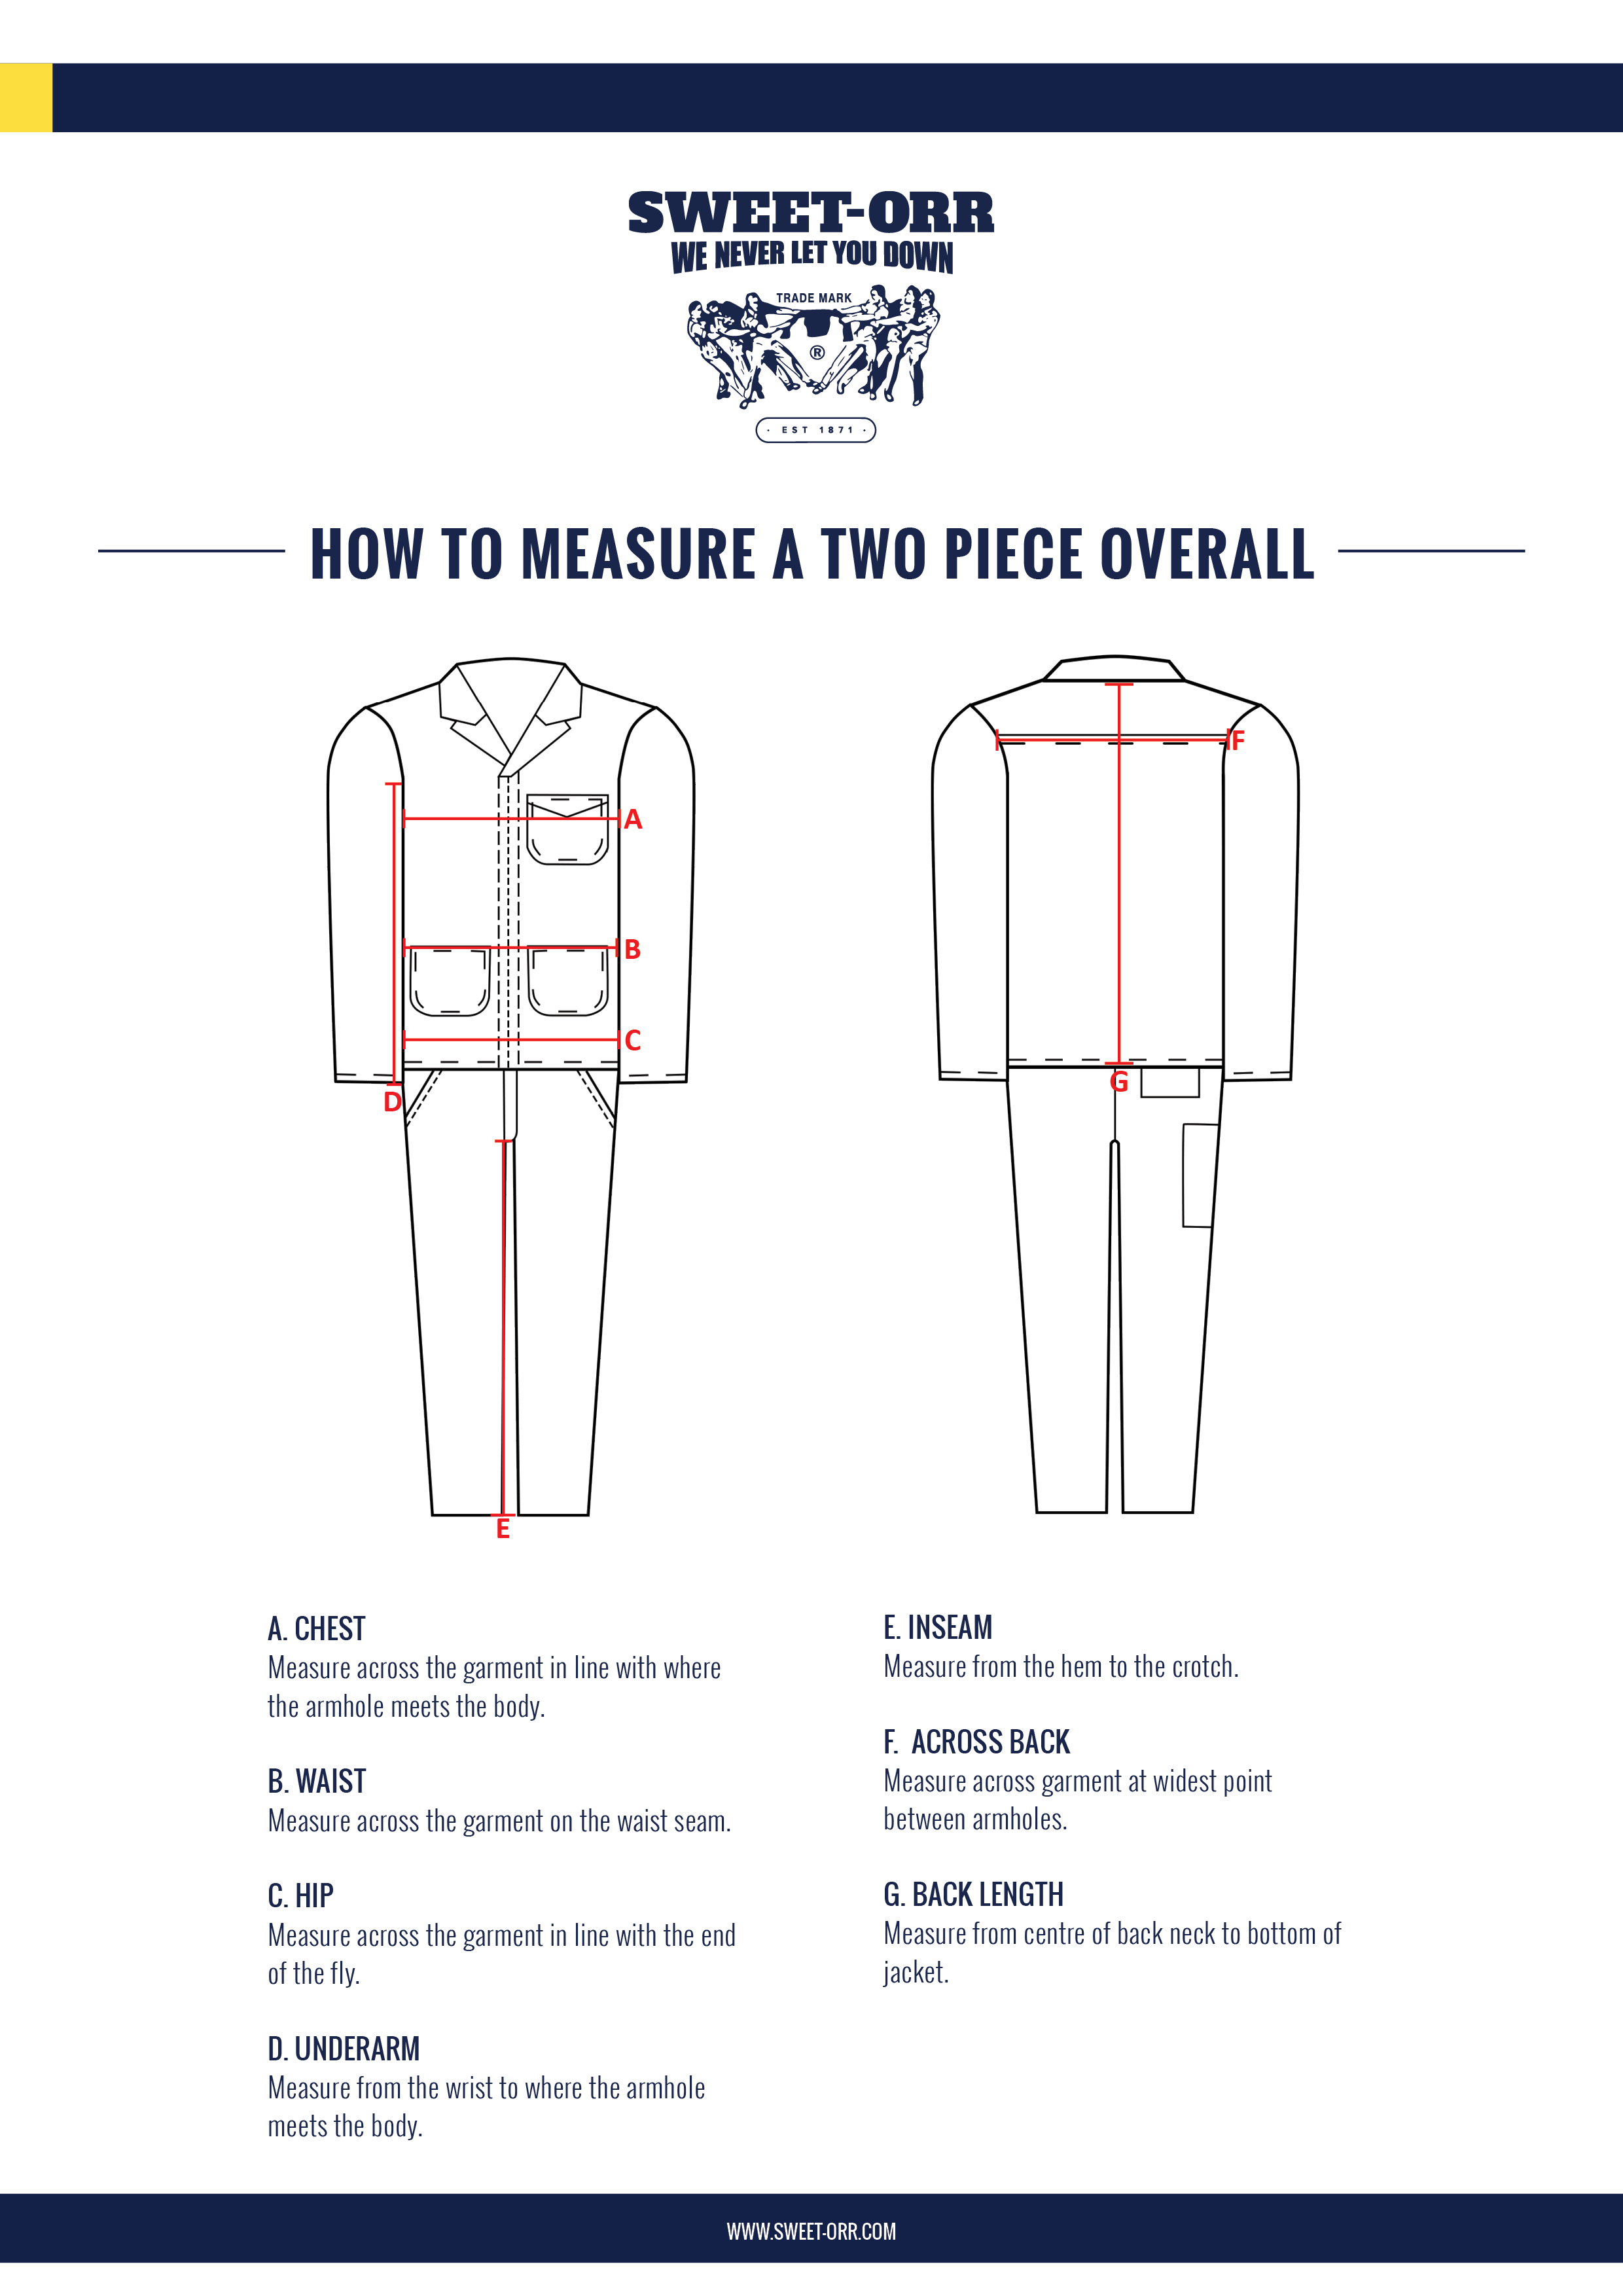 Two-Piece - Overall Measuring